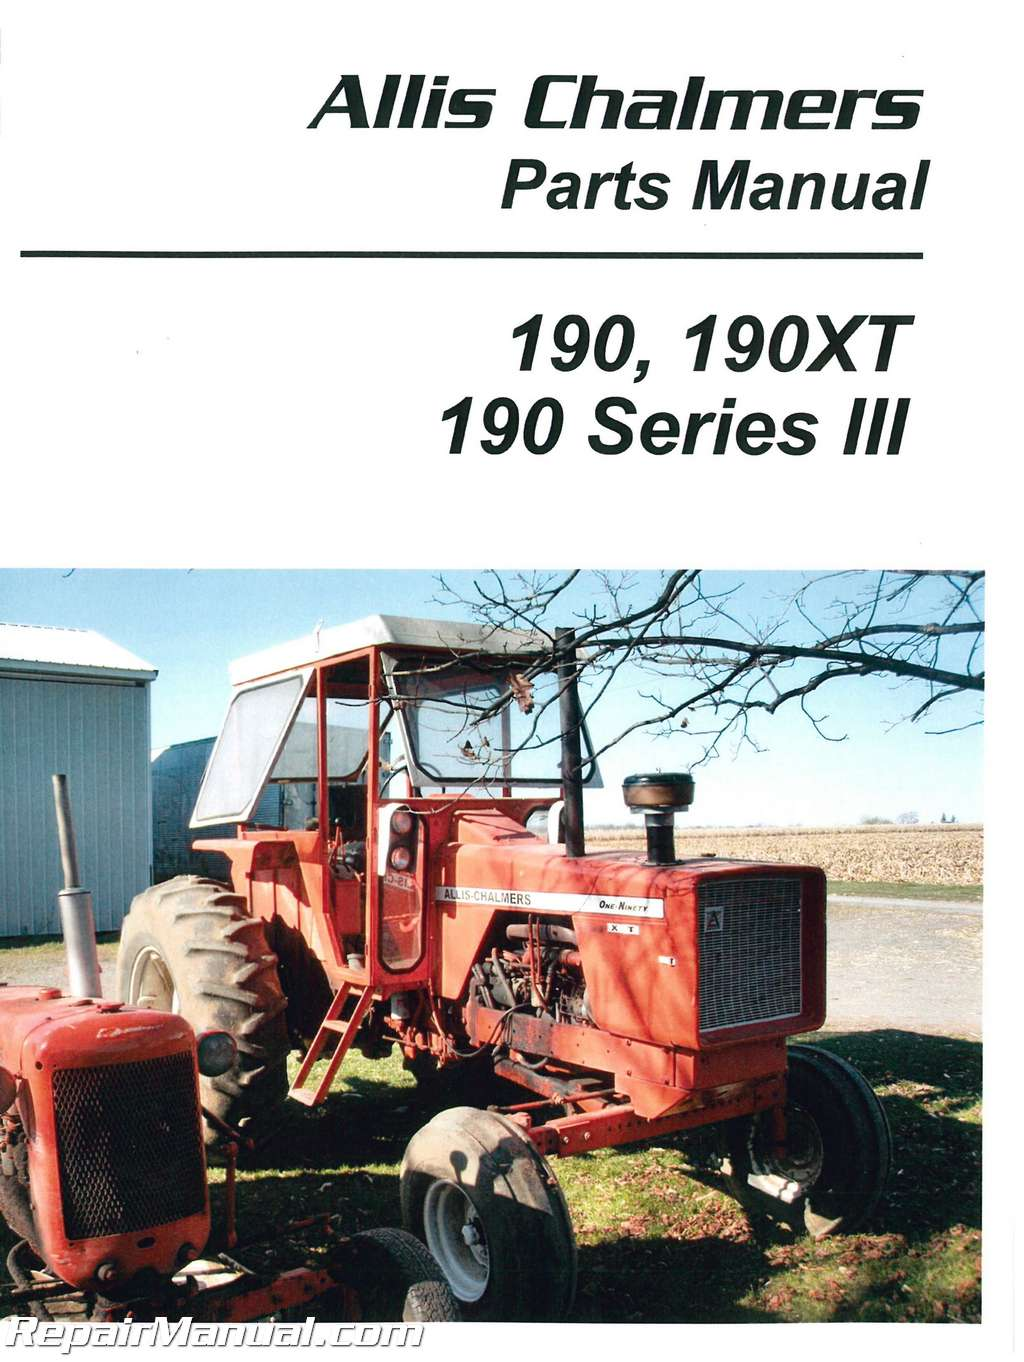 Pontiac Bonneville Under Dash Fuse Box Diagram additionally Douglas Dragonfly also Motodata Pc E together with Allis Chalmers Xt And Series Iii Parts Manual furthermore Fog. on honda wiring diagram